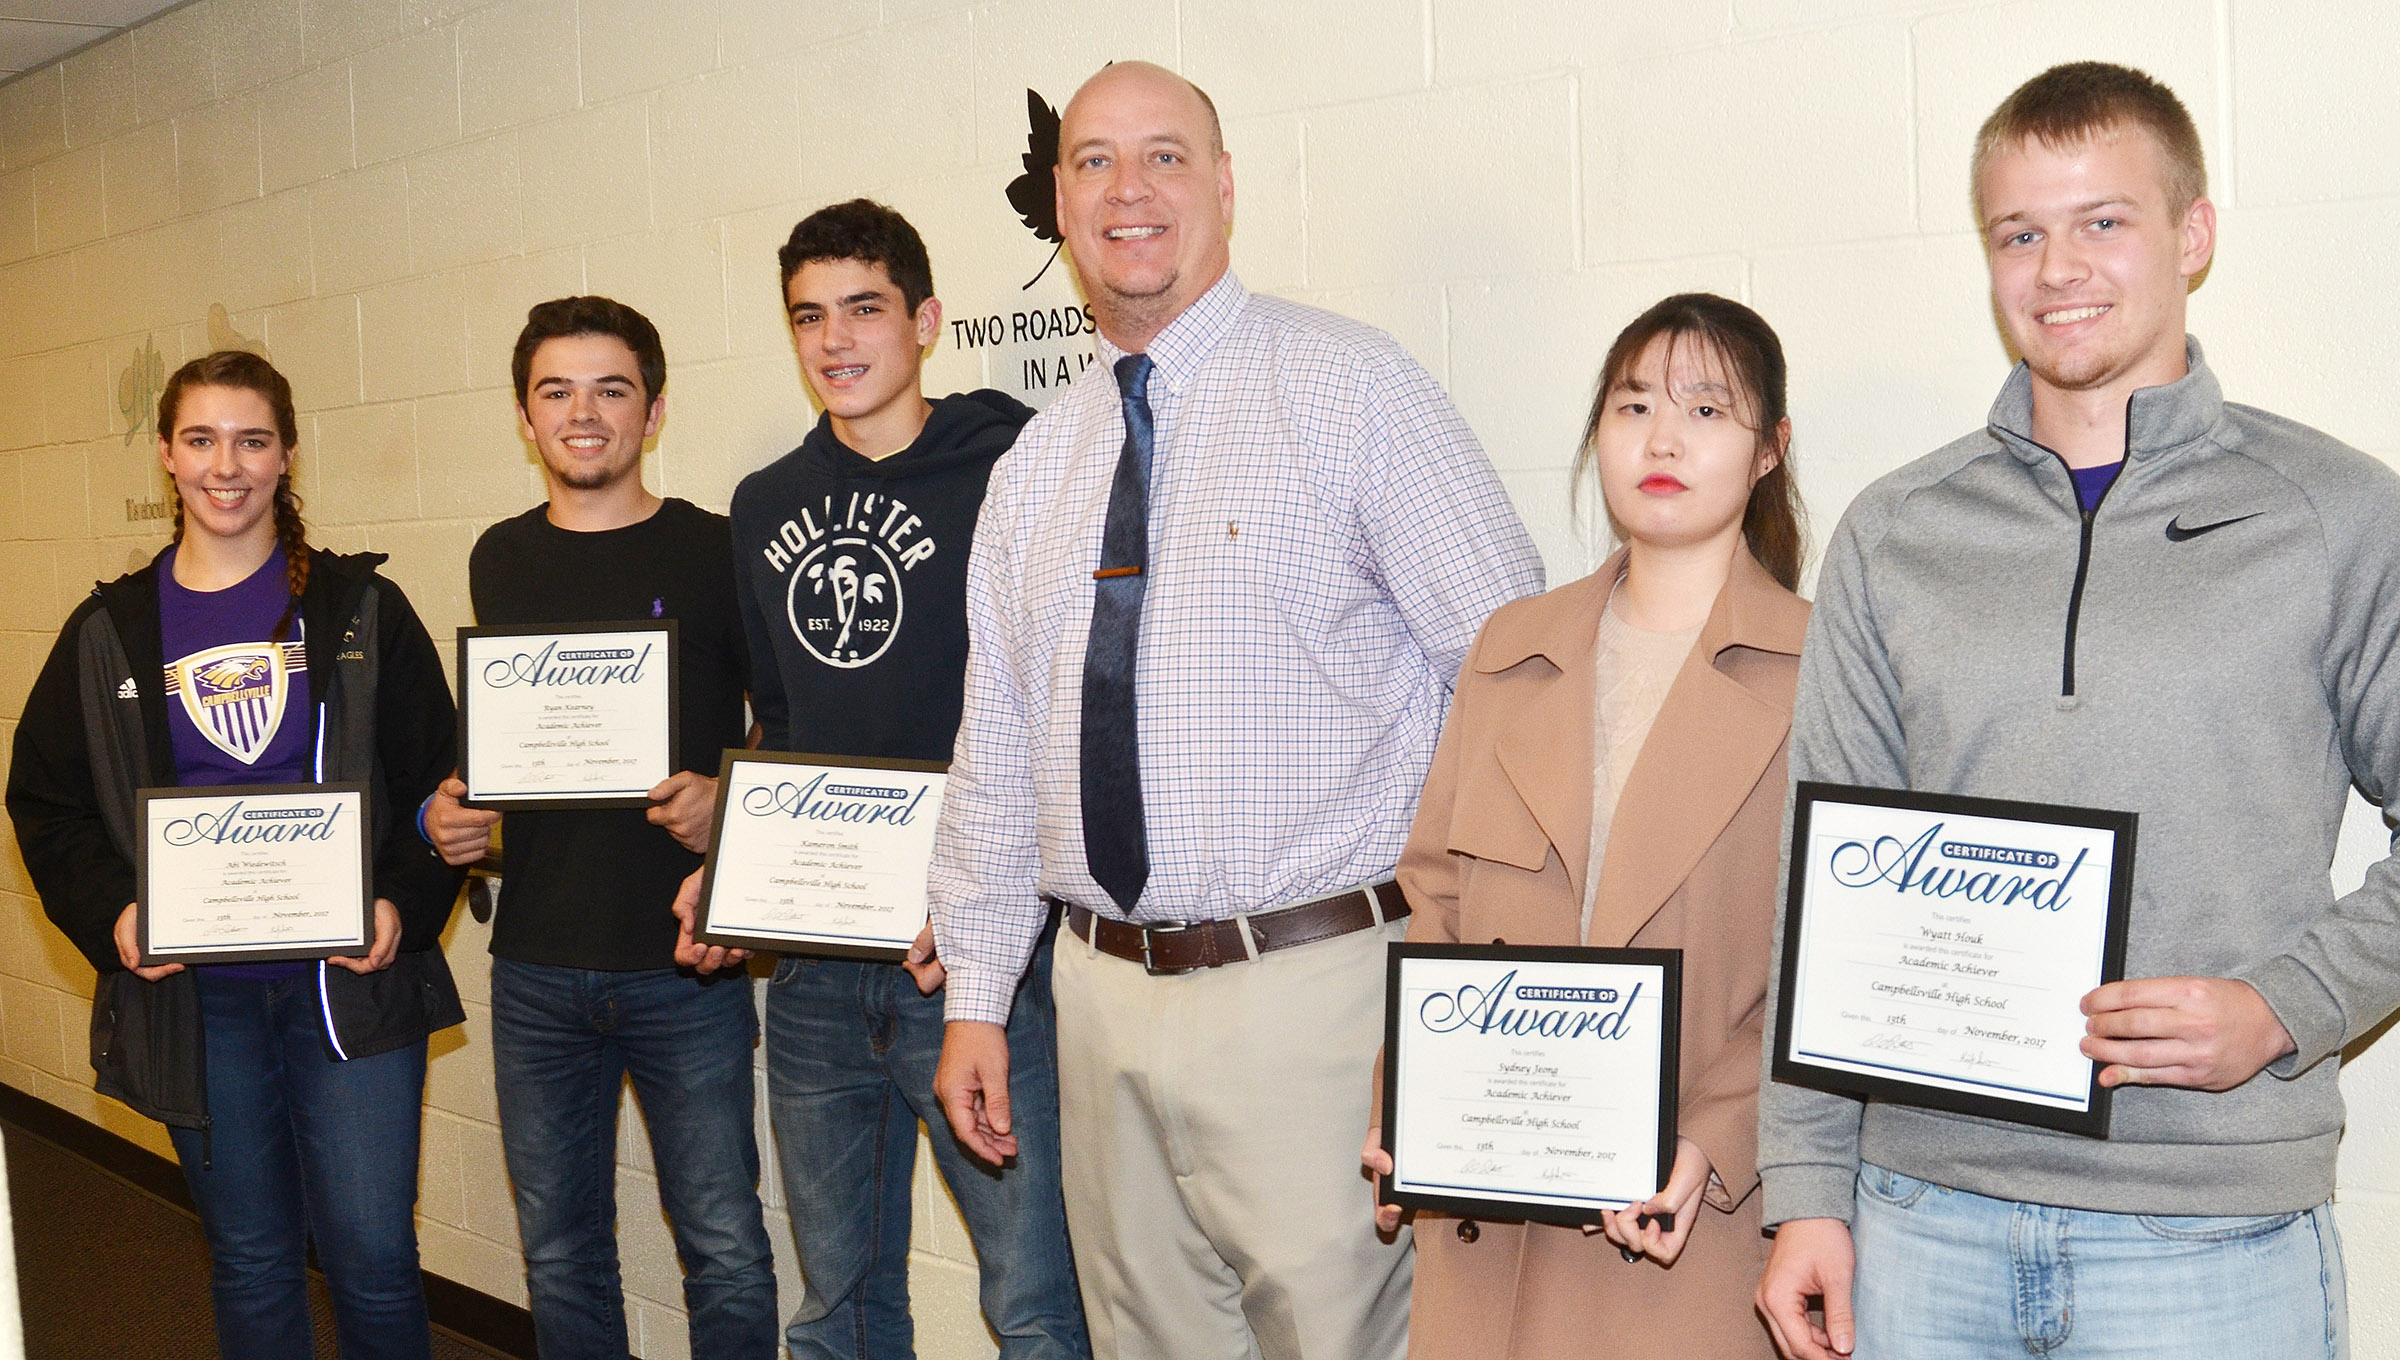 Campbellsville High School academic achievers for November were recognized at the Campbellsville Board of Education meeting on Monday, Nov. 13. Pictured with CHS Principal David Petett they are, from left, freshman Abi Wiedewitsch, junior Ryan Kearney, freshman Kameron Smith, Petett and seniors Sydney Jeong and Wyatt Houk. Absent from the photo are sophomores Blake Allen and Sydney Wilson and junior Elizabeth Sullivan.